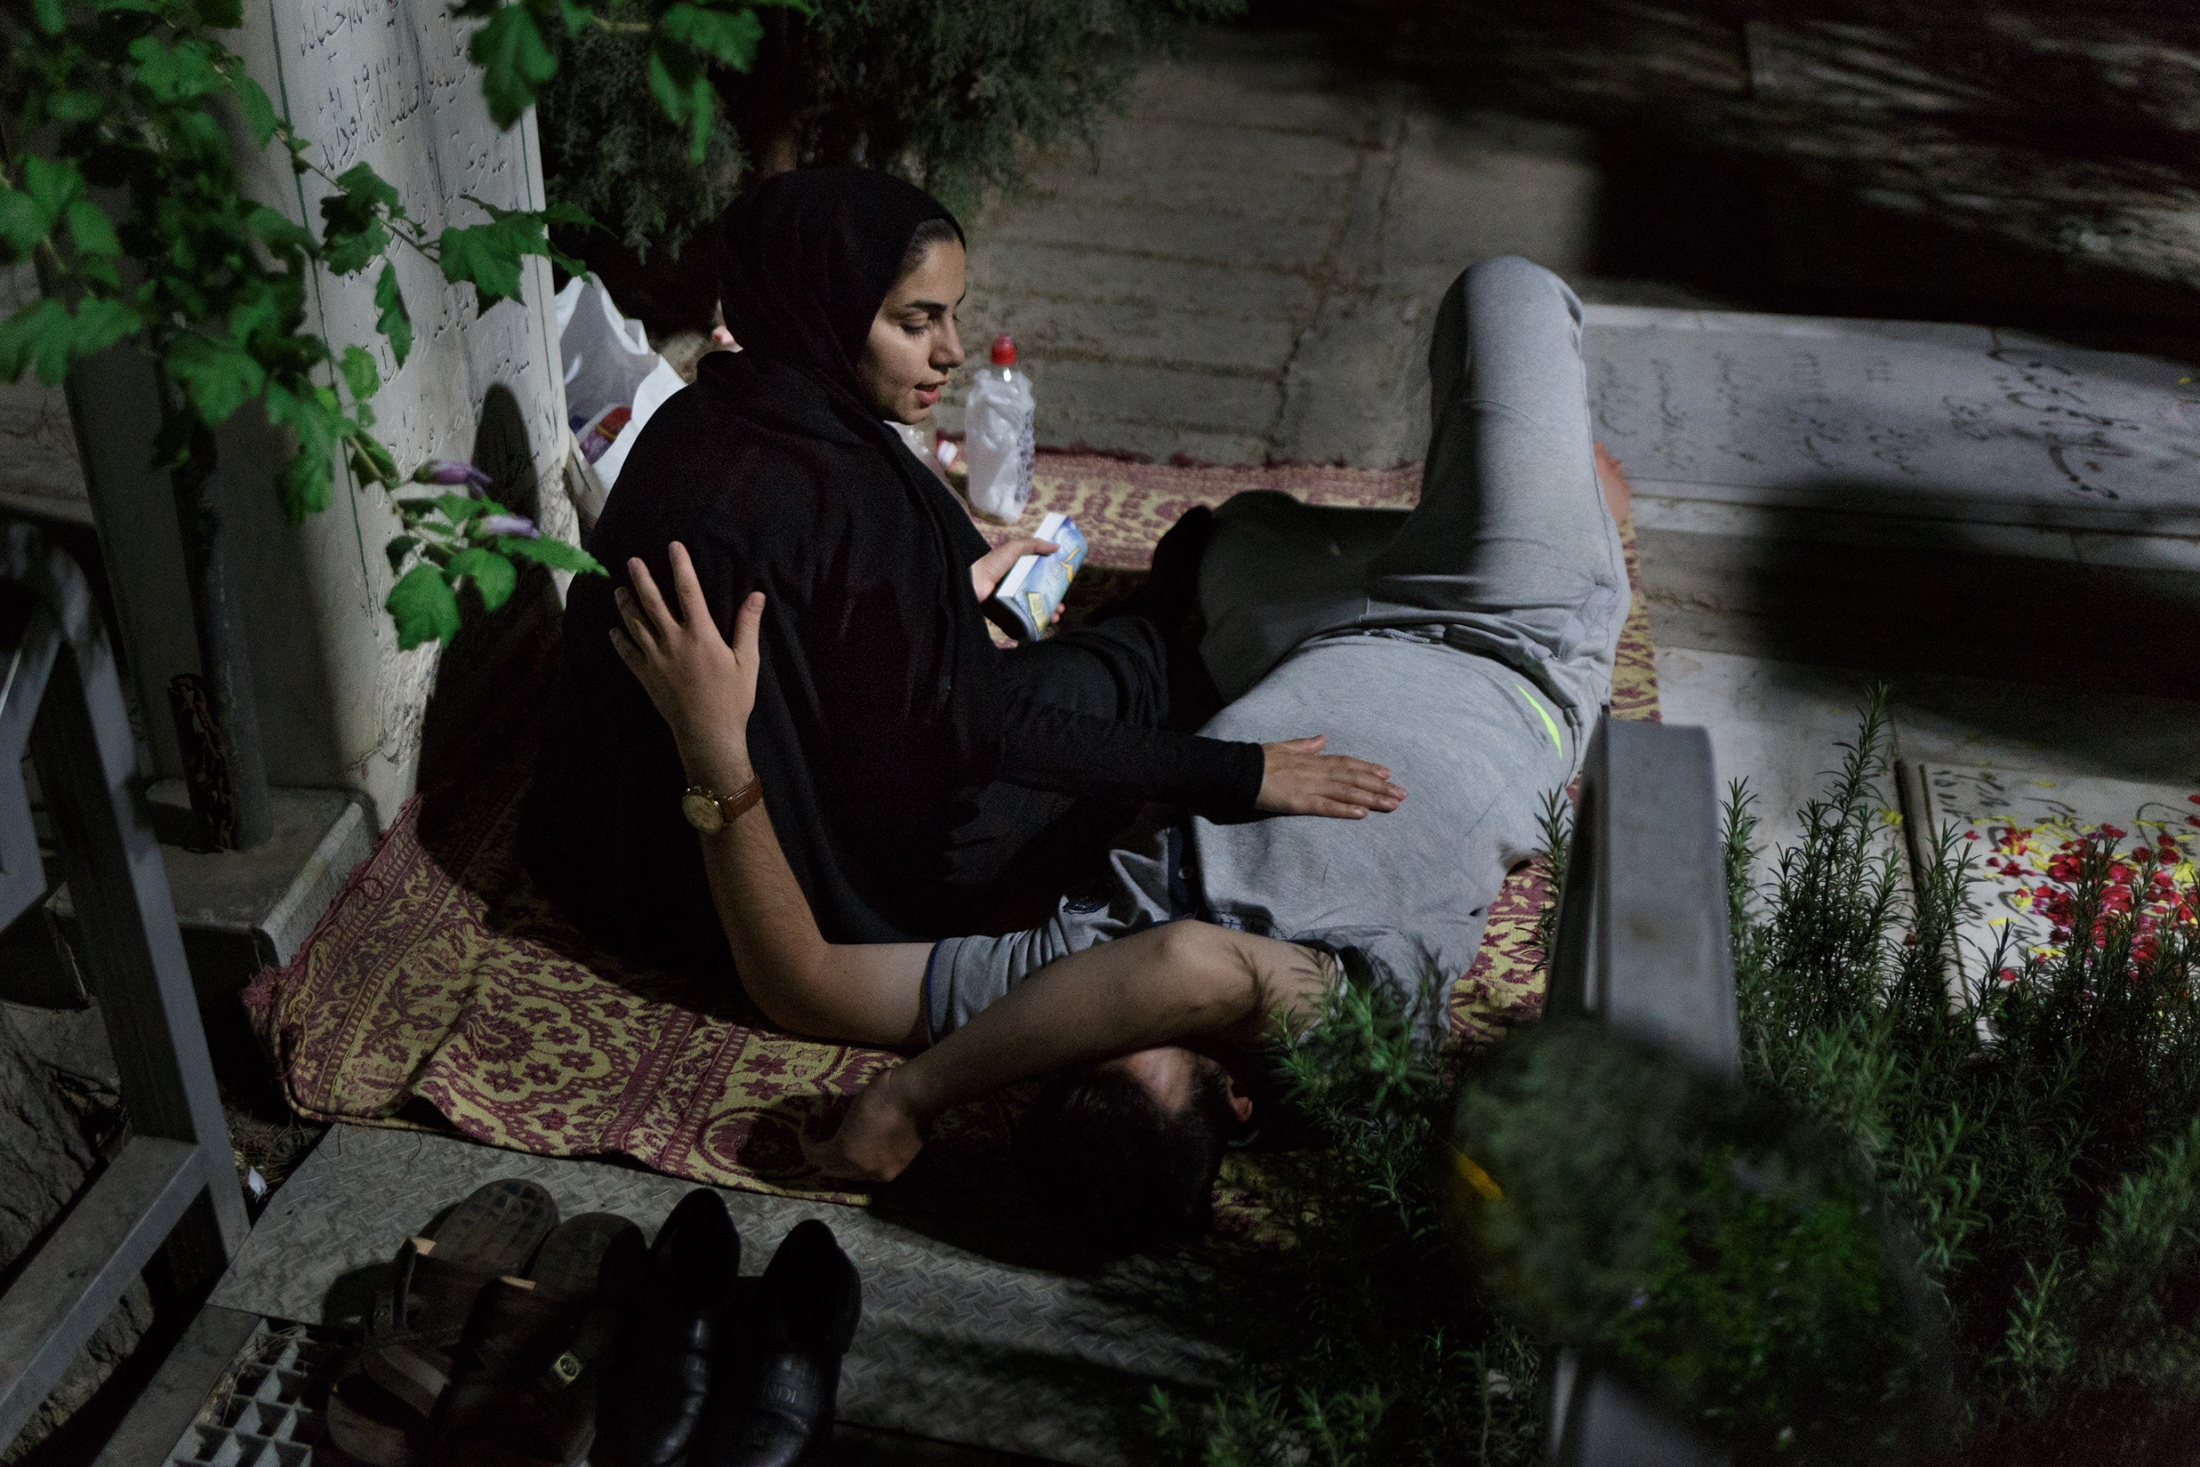 """""""It seems as we do not belong anywhere. We strive for a better life, but we can not nd it here. """"- Sara, 22, is from Sanandaj and studied psychology. She longs for a place of hope.                     A couple spending the second holy Lailat al-Qadr of Ramadan on Tehran's martyr cemetry. Shiites belive in the holiness of Martyrs and their valued position for Allah, why some spend their holidays near the martyrs."""